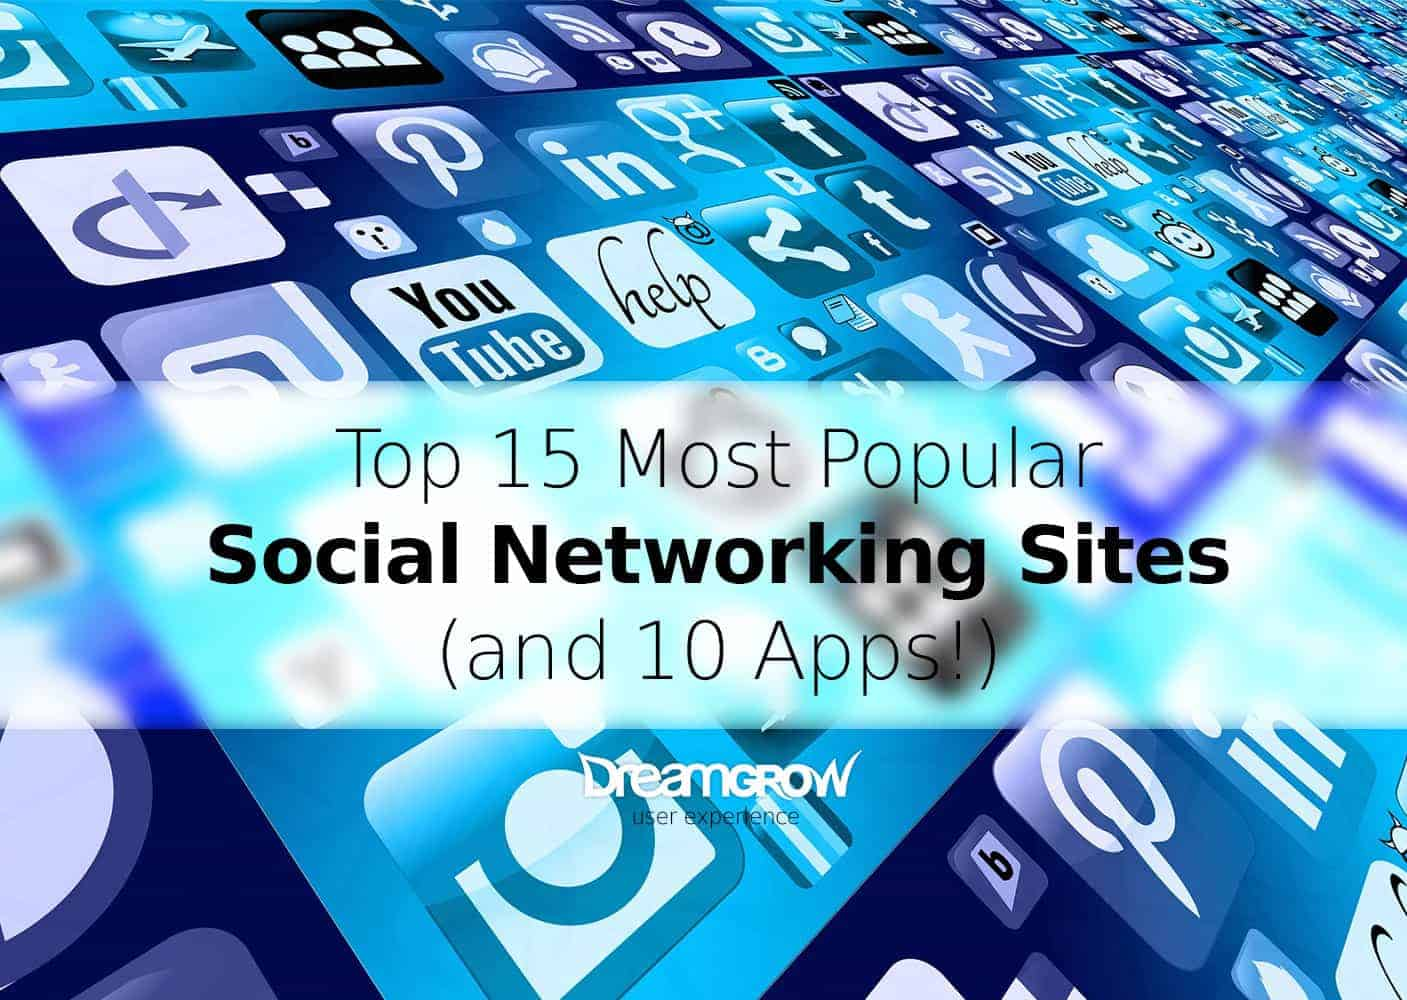 Top 15 Most Popular Social Networking Sites and Apps  November 2017    DreamGrow 2017. Top 15 Most Popular Social Networking Sites and Apps  November